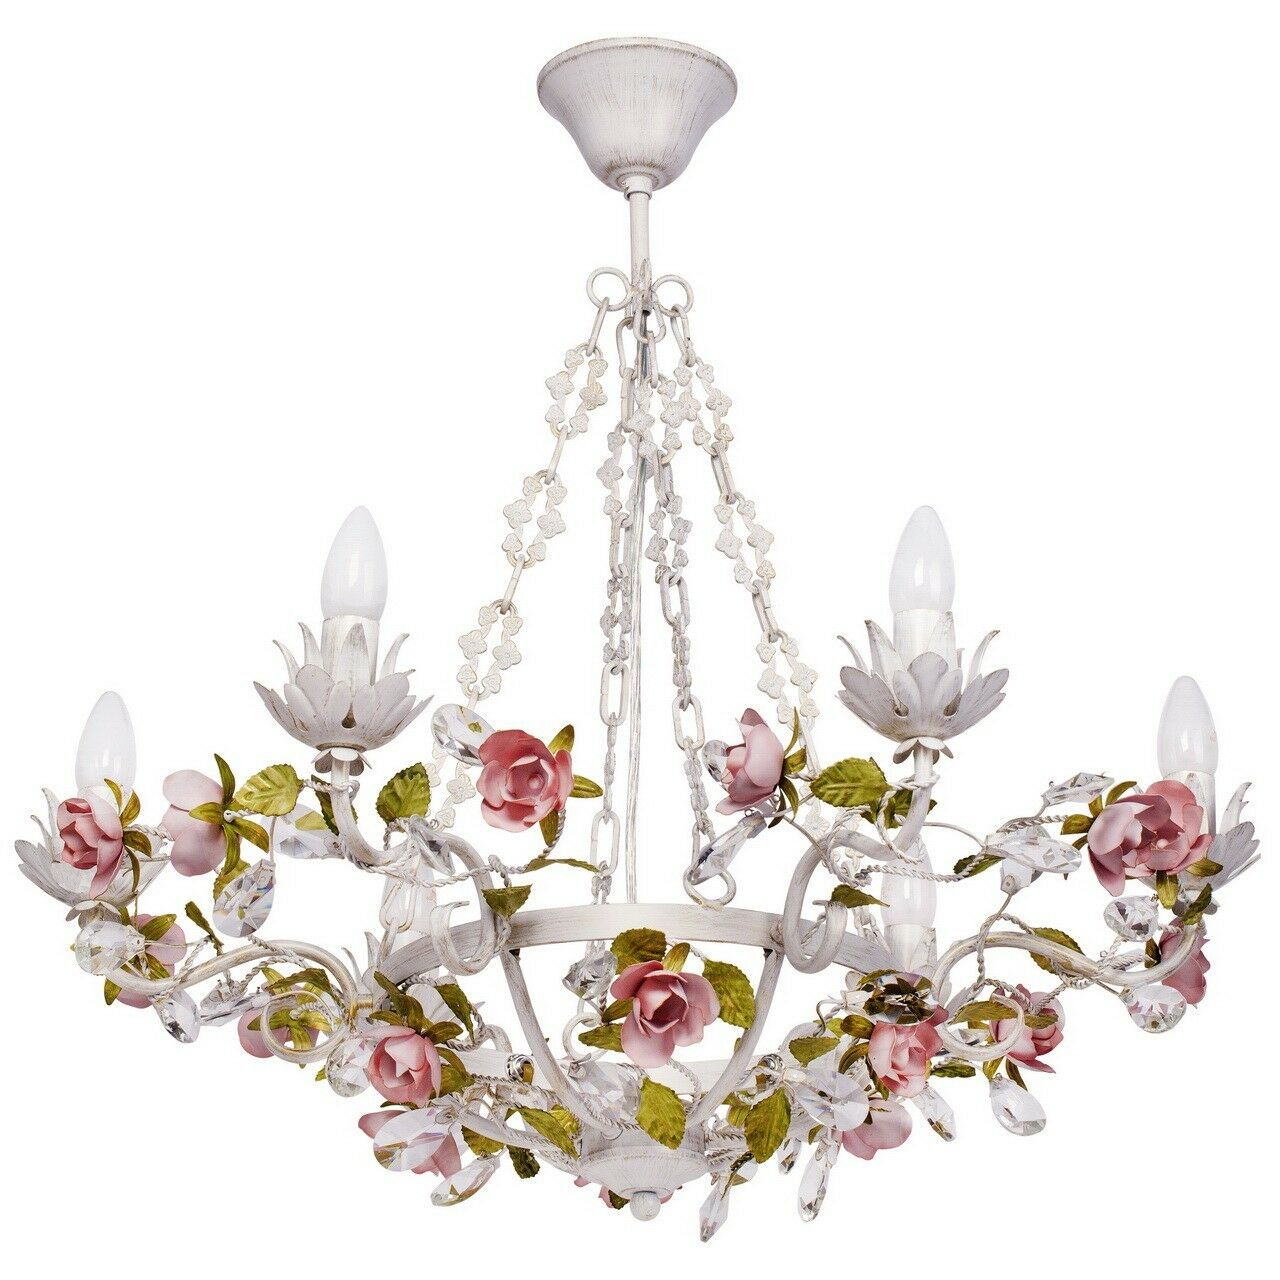 Floral pendant chandelier crystal drops Weiß Gold rot metal Provence 640W E14